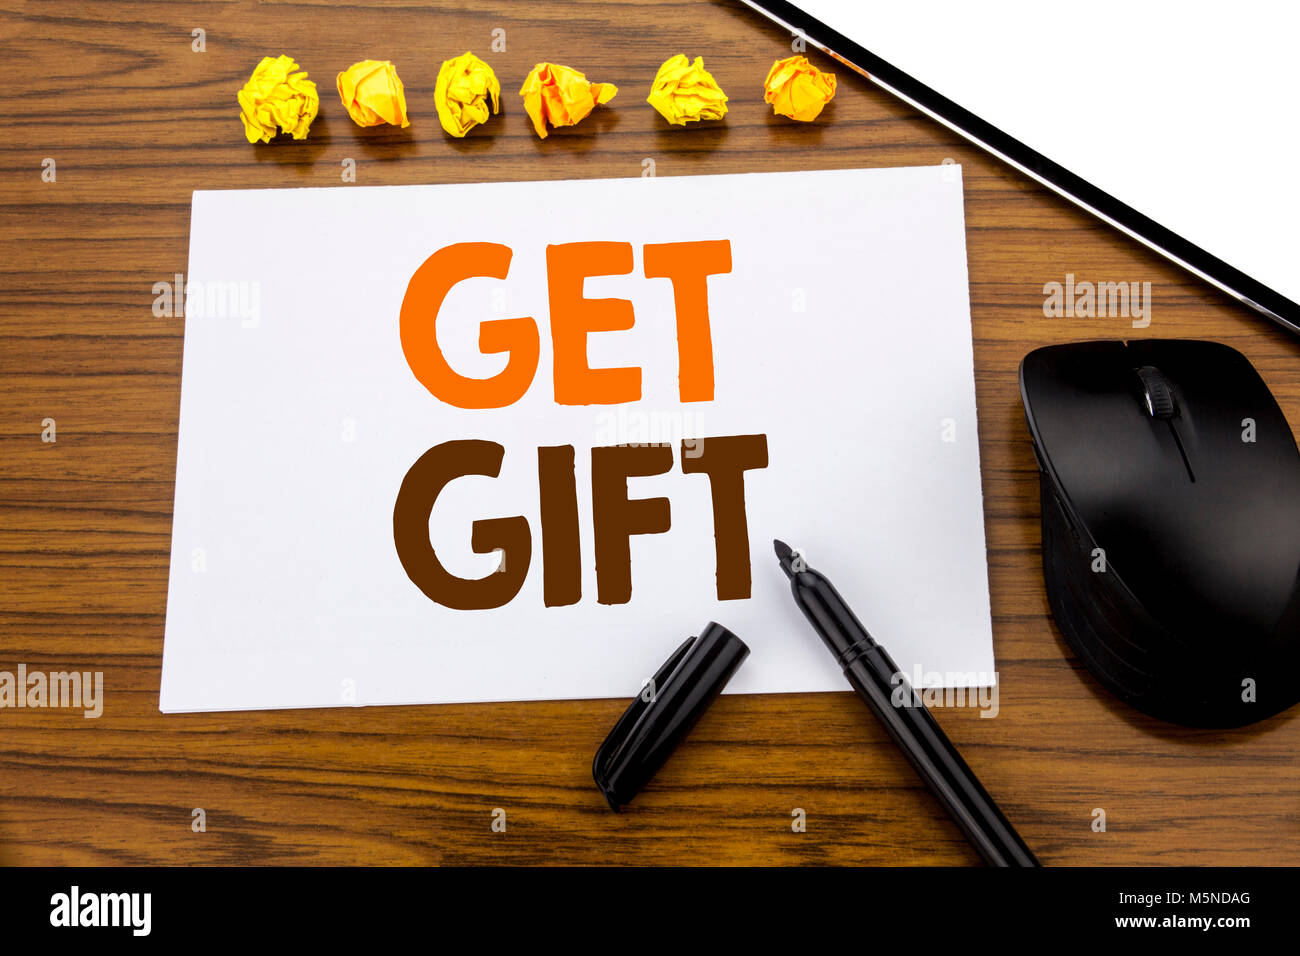 Conceptual hand writing text showing Get Gift. Business concept for Free Shoping Coupon written on sticky note paper - Stock Image